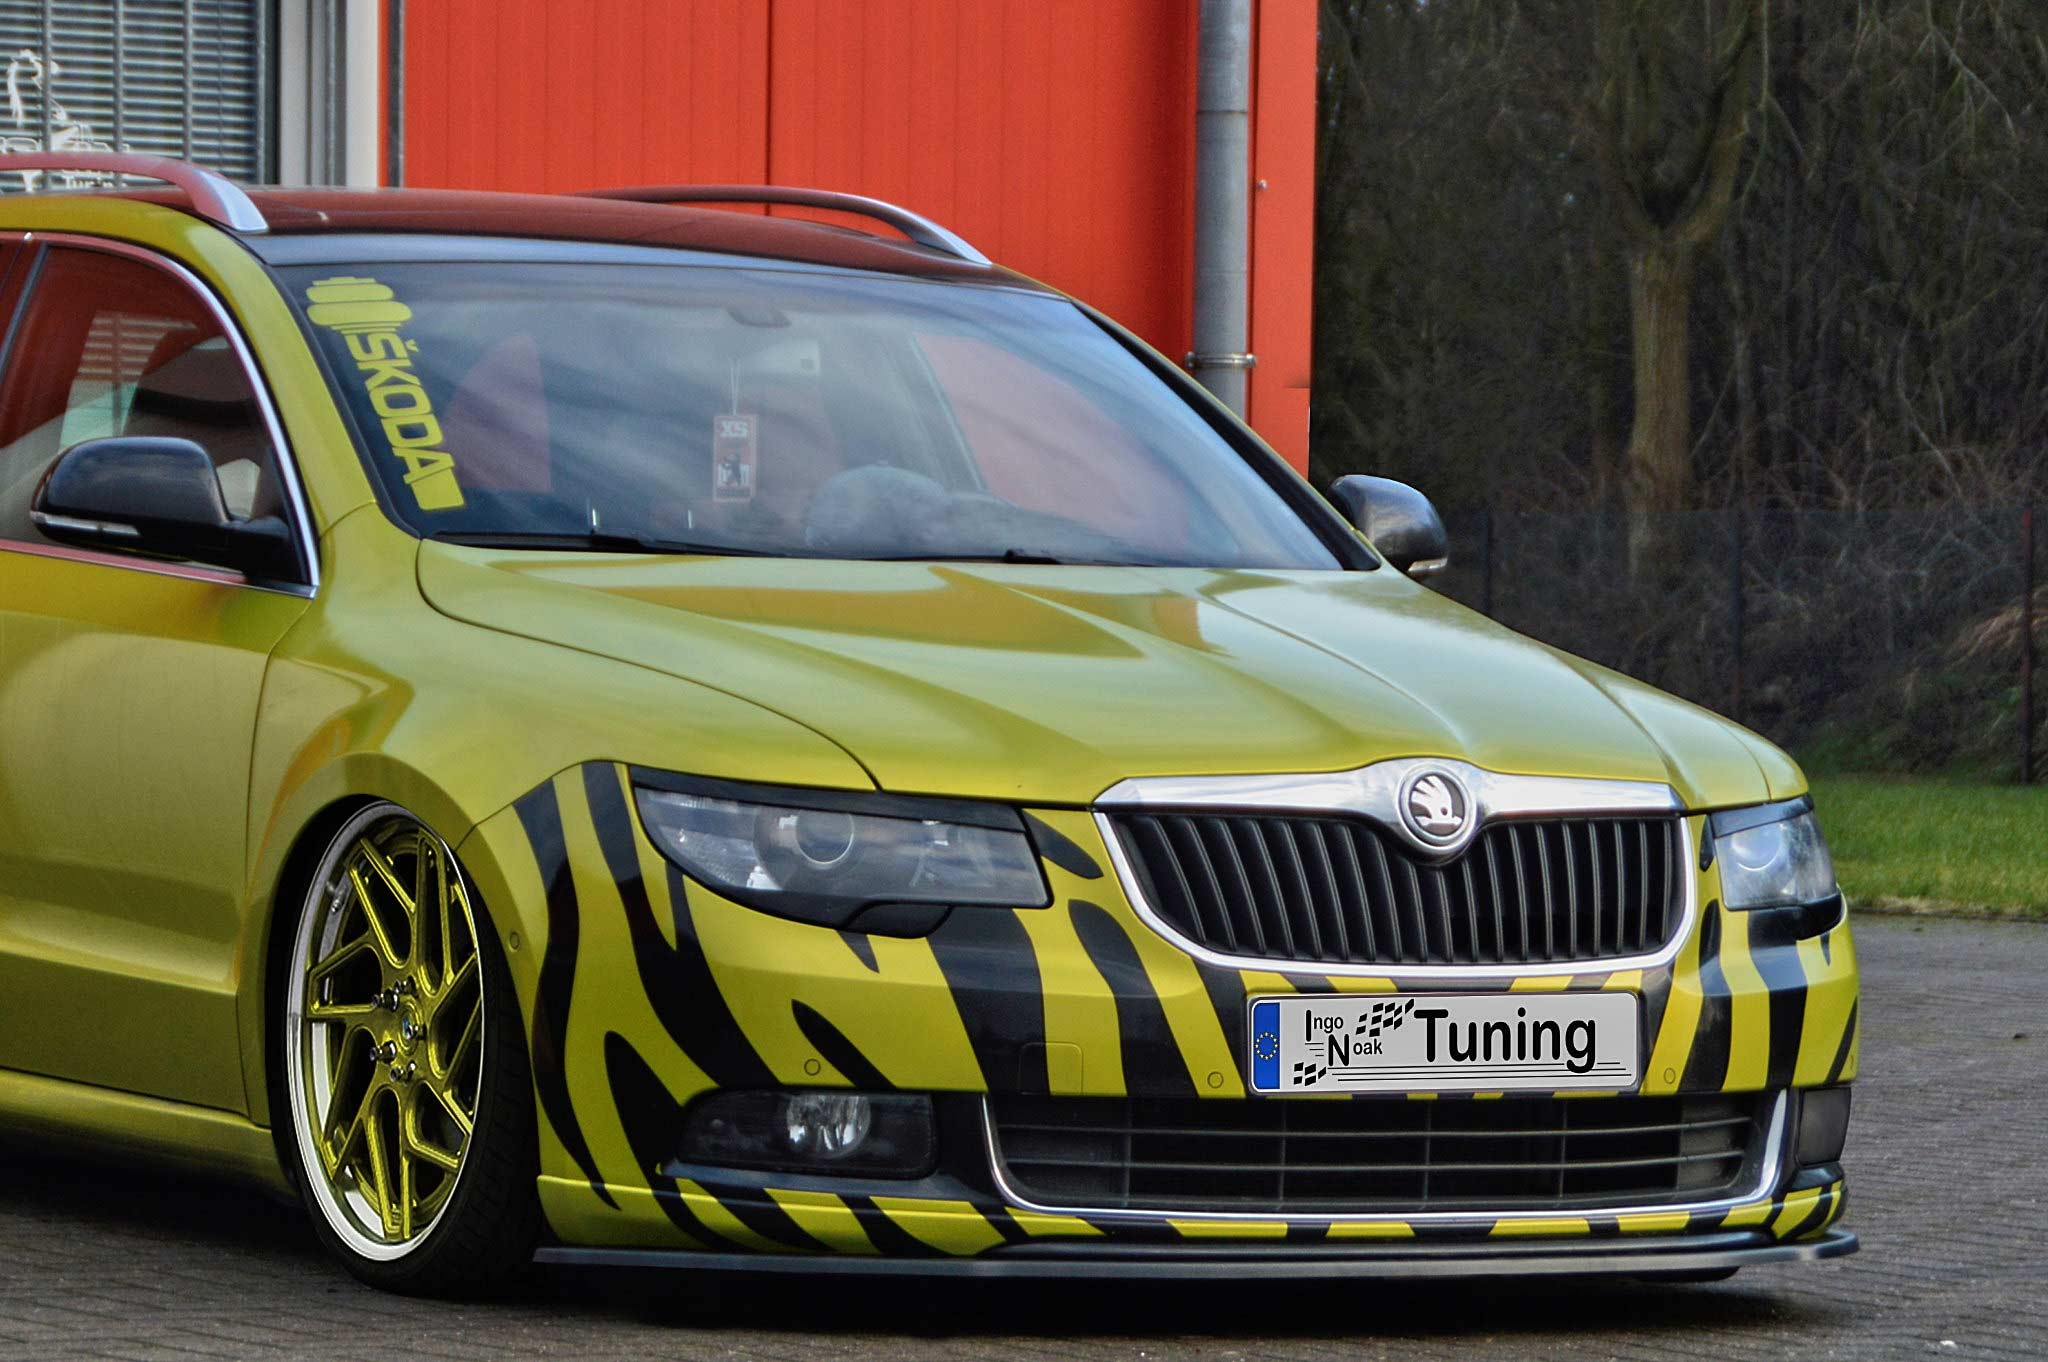 In Tuning Cupspoilerlip Glossy For Skoda Superb Ii 3t Styling Stossstange